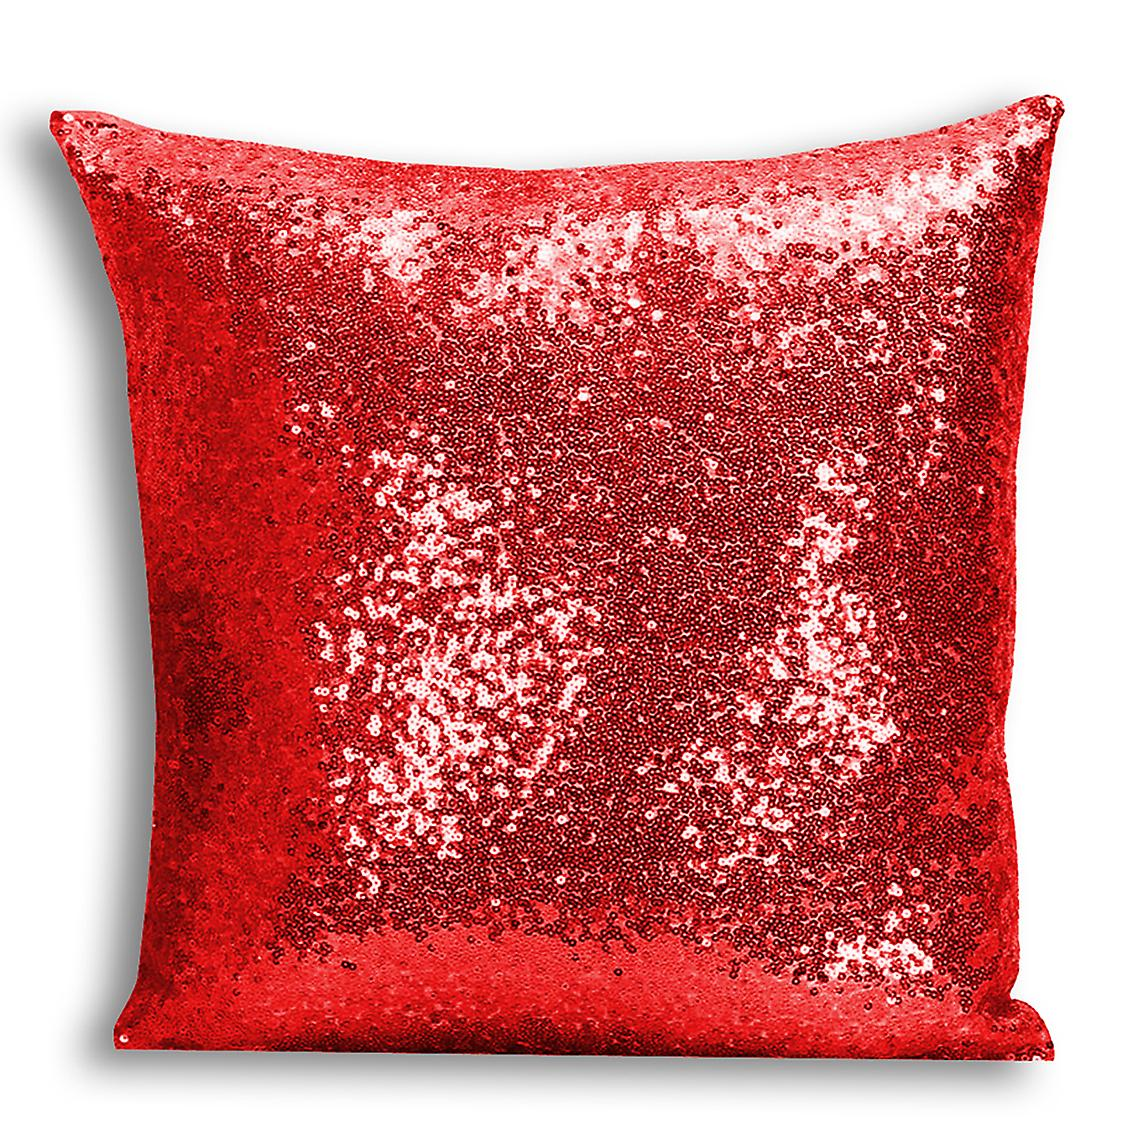 I Printed CushionPillow Sequin Cover With Inserted Design Home Red tronixsUnicorn For 4 Decor SVLzUMGqp